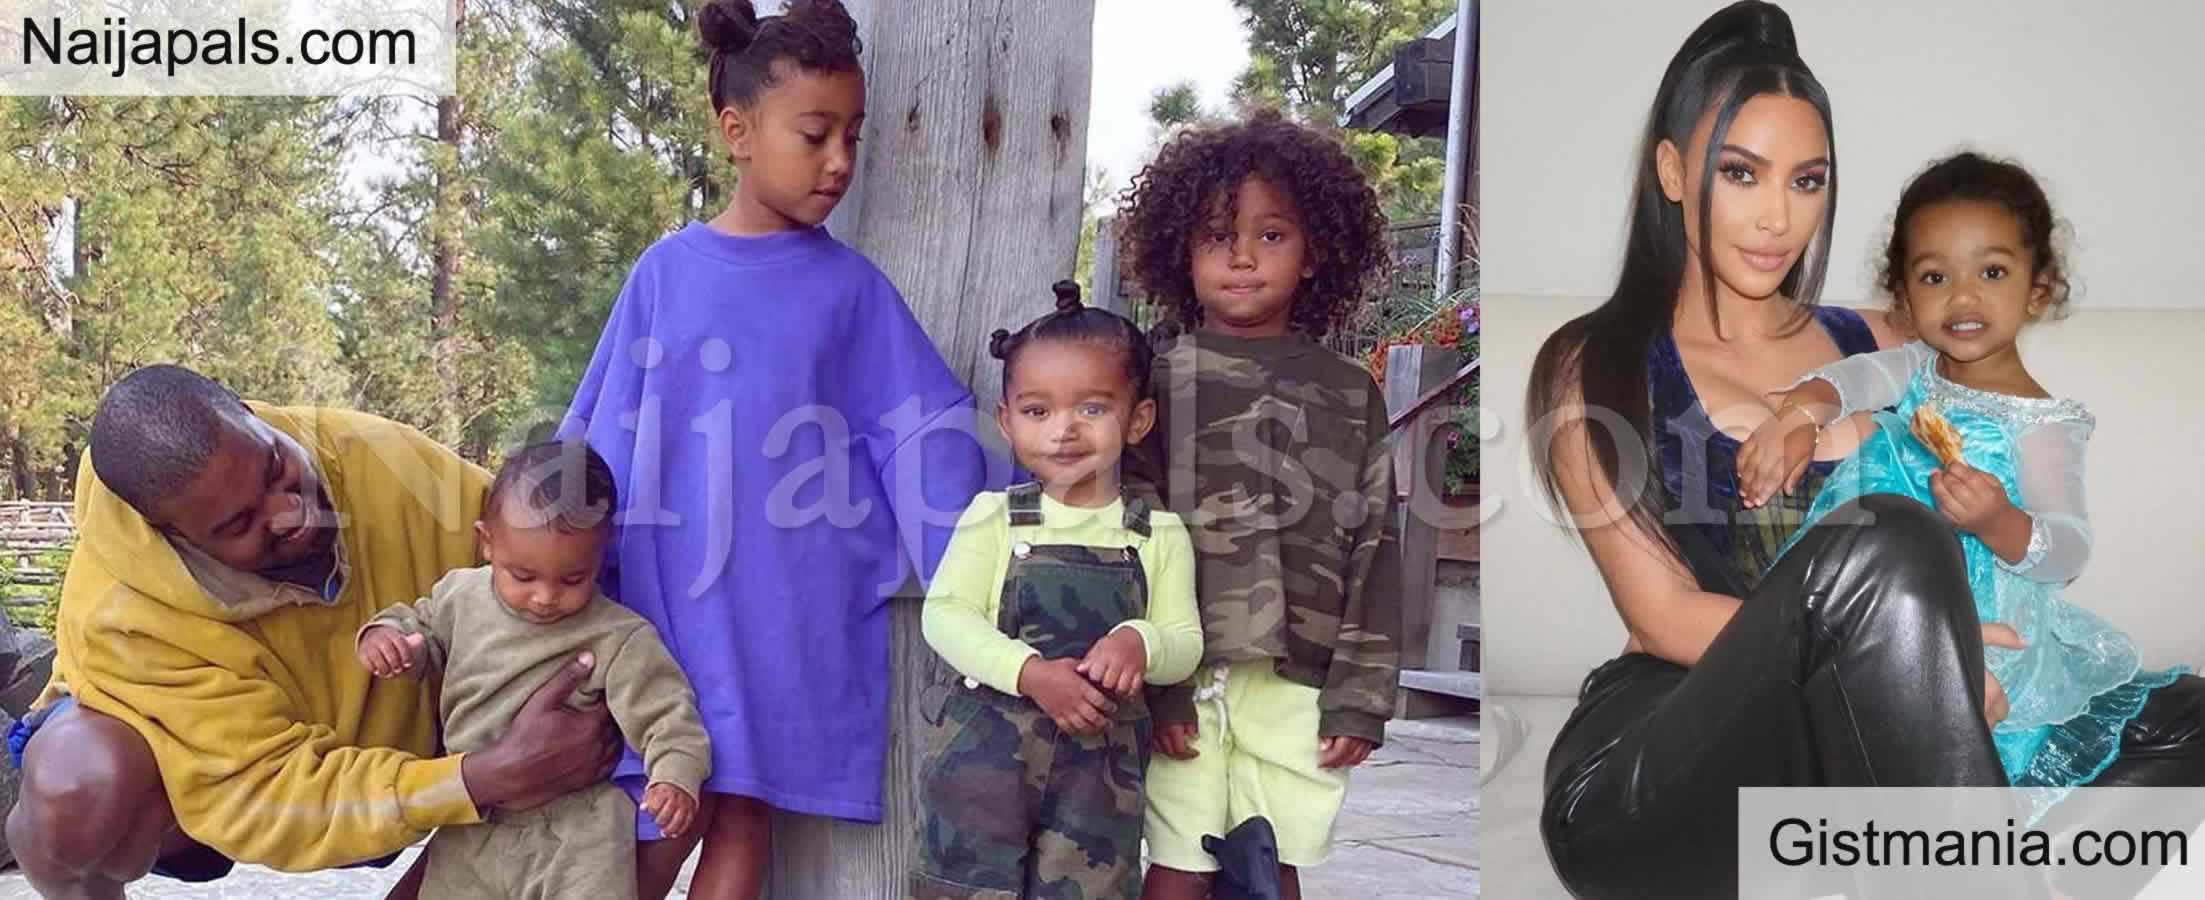 "<img alt='.' class='lazyload' data-src='https://img.gistmania.com/emot/kiss.gif' /> ""How Did I Get So Lucky?"" - <b>Kim Kardashian Flaunts Her Family Photos Including Kanye</b>"